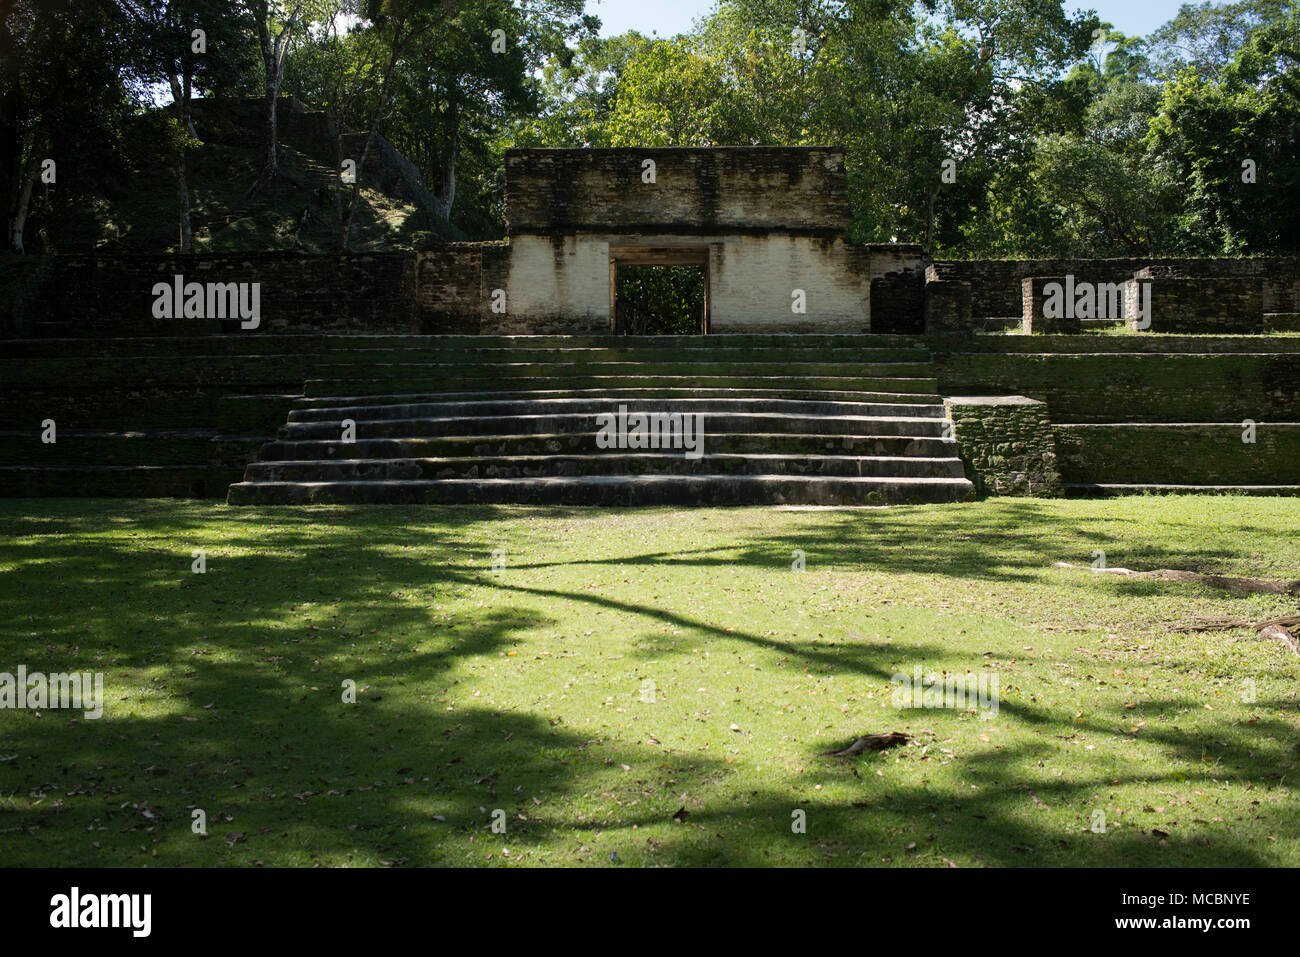 The main courtyard at the ancient Mayan site of Cahal Pech in western Belize.Stock Photo